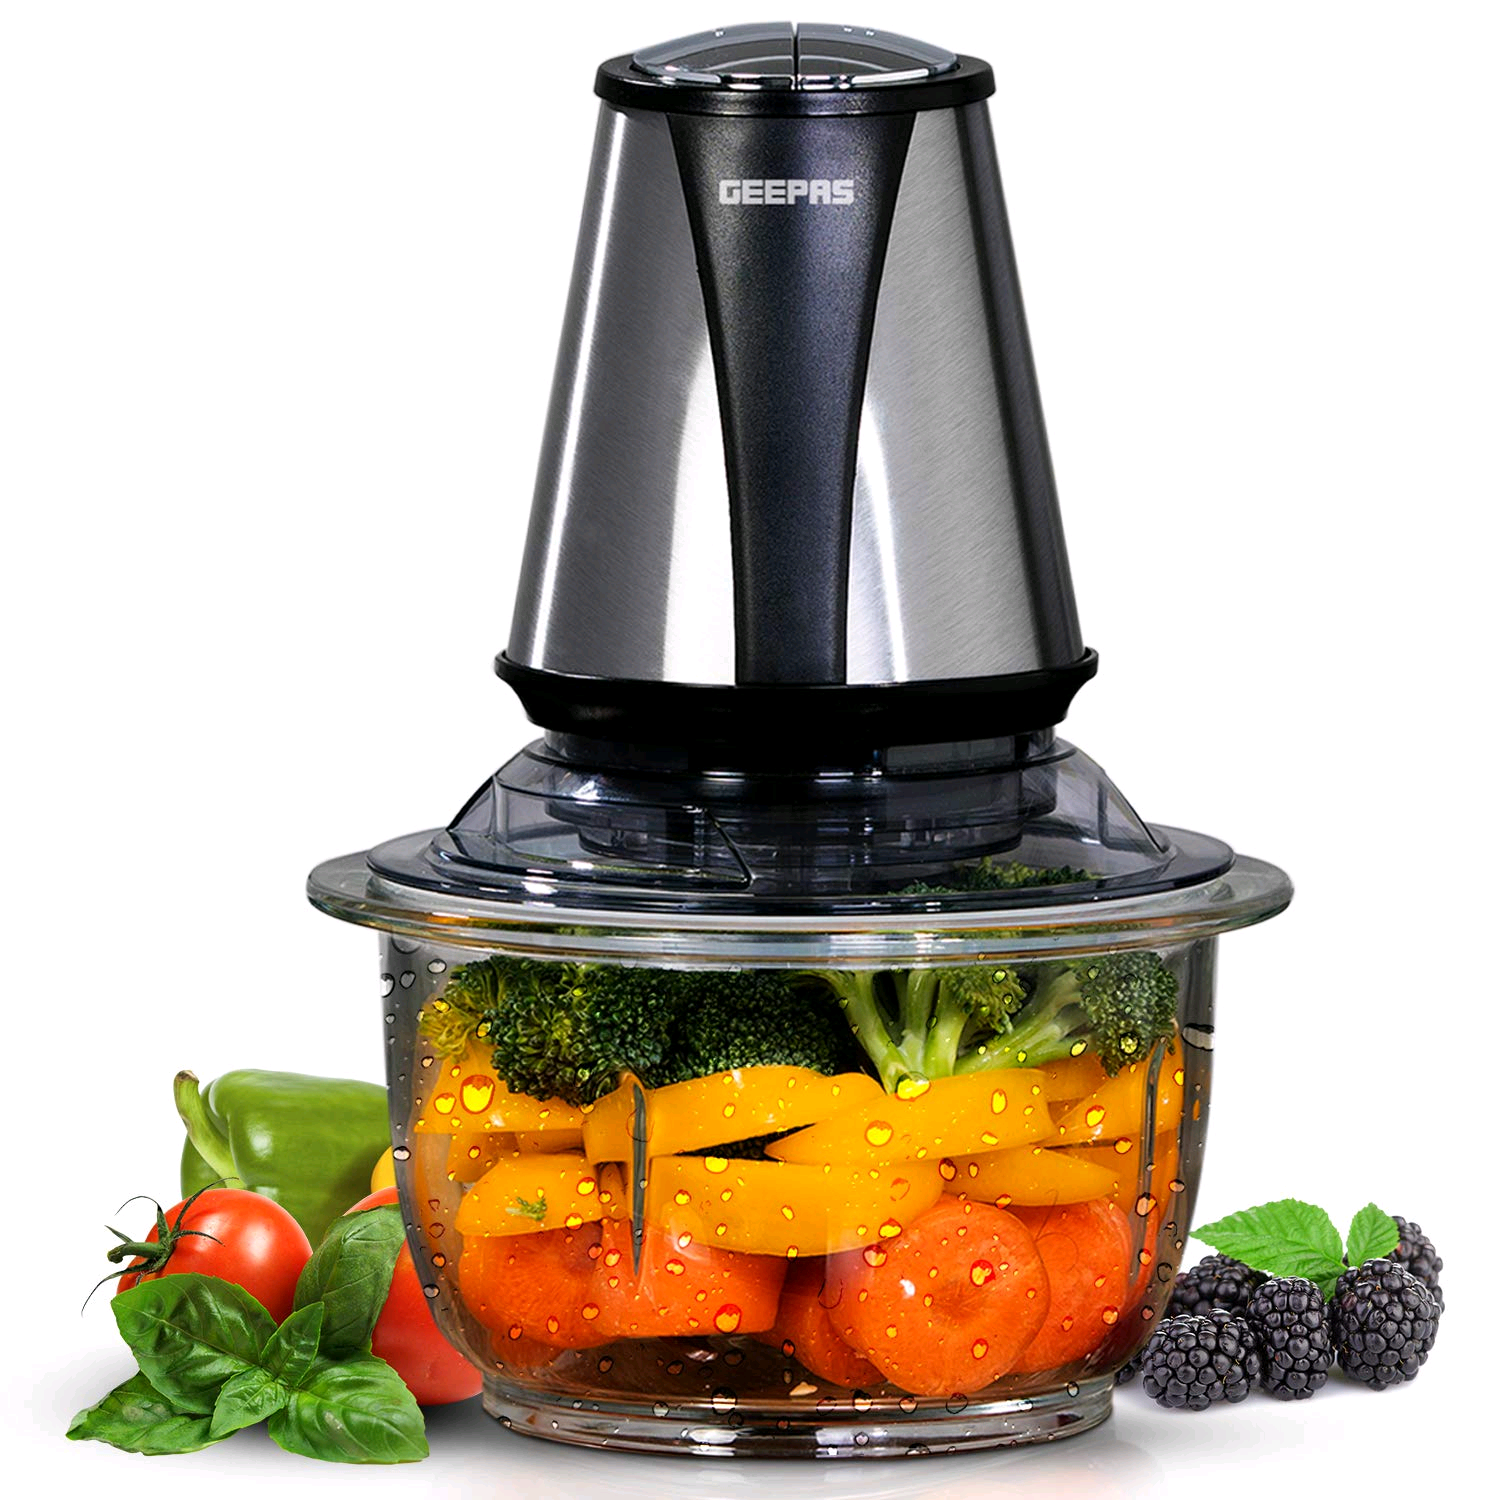 Geepas GMC42014UK 400W Mini Food Processor 1.2L Glass Jar Bowl & 4 Stainless Steel Blades 2 Speed Perfect for Salads, Salsa, Guacamole, Pesto, Curry Pastes More